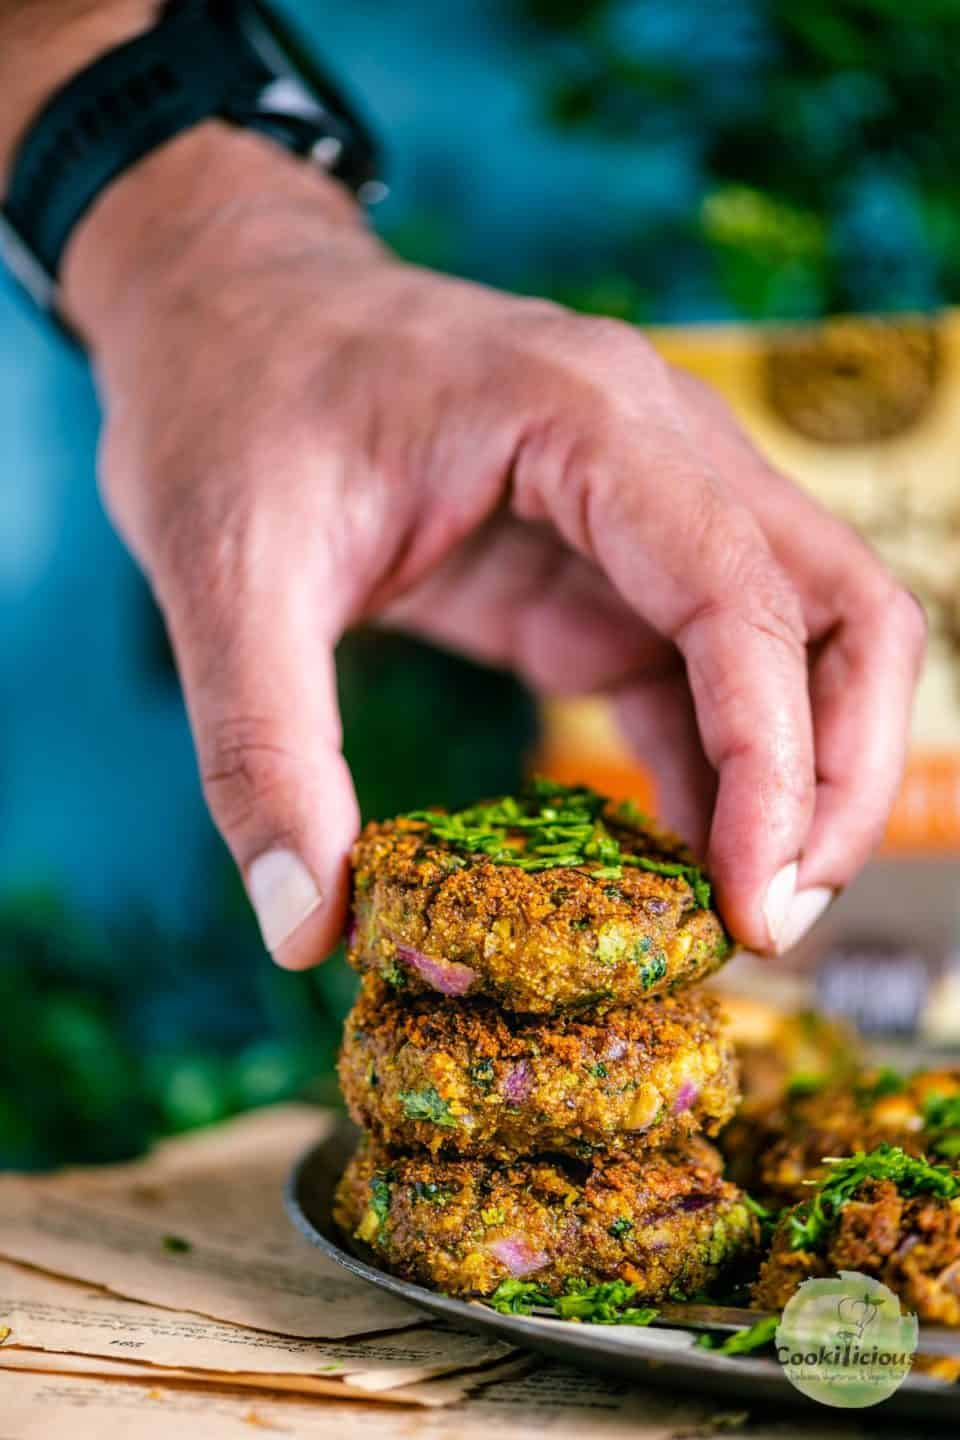 a hand picking up one chickpea patty from a stack